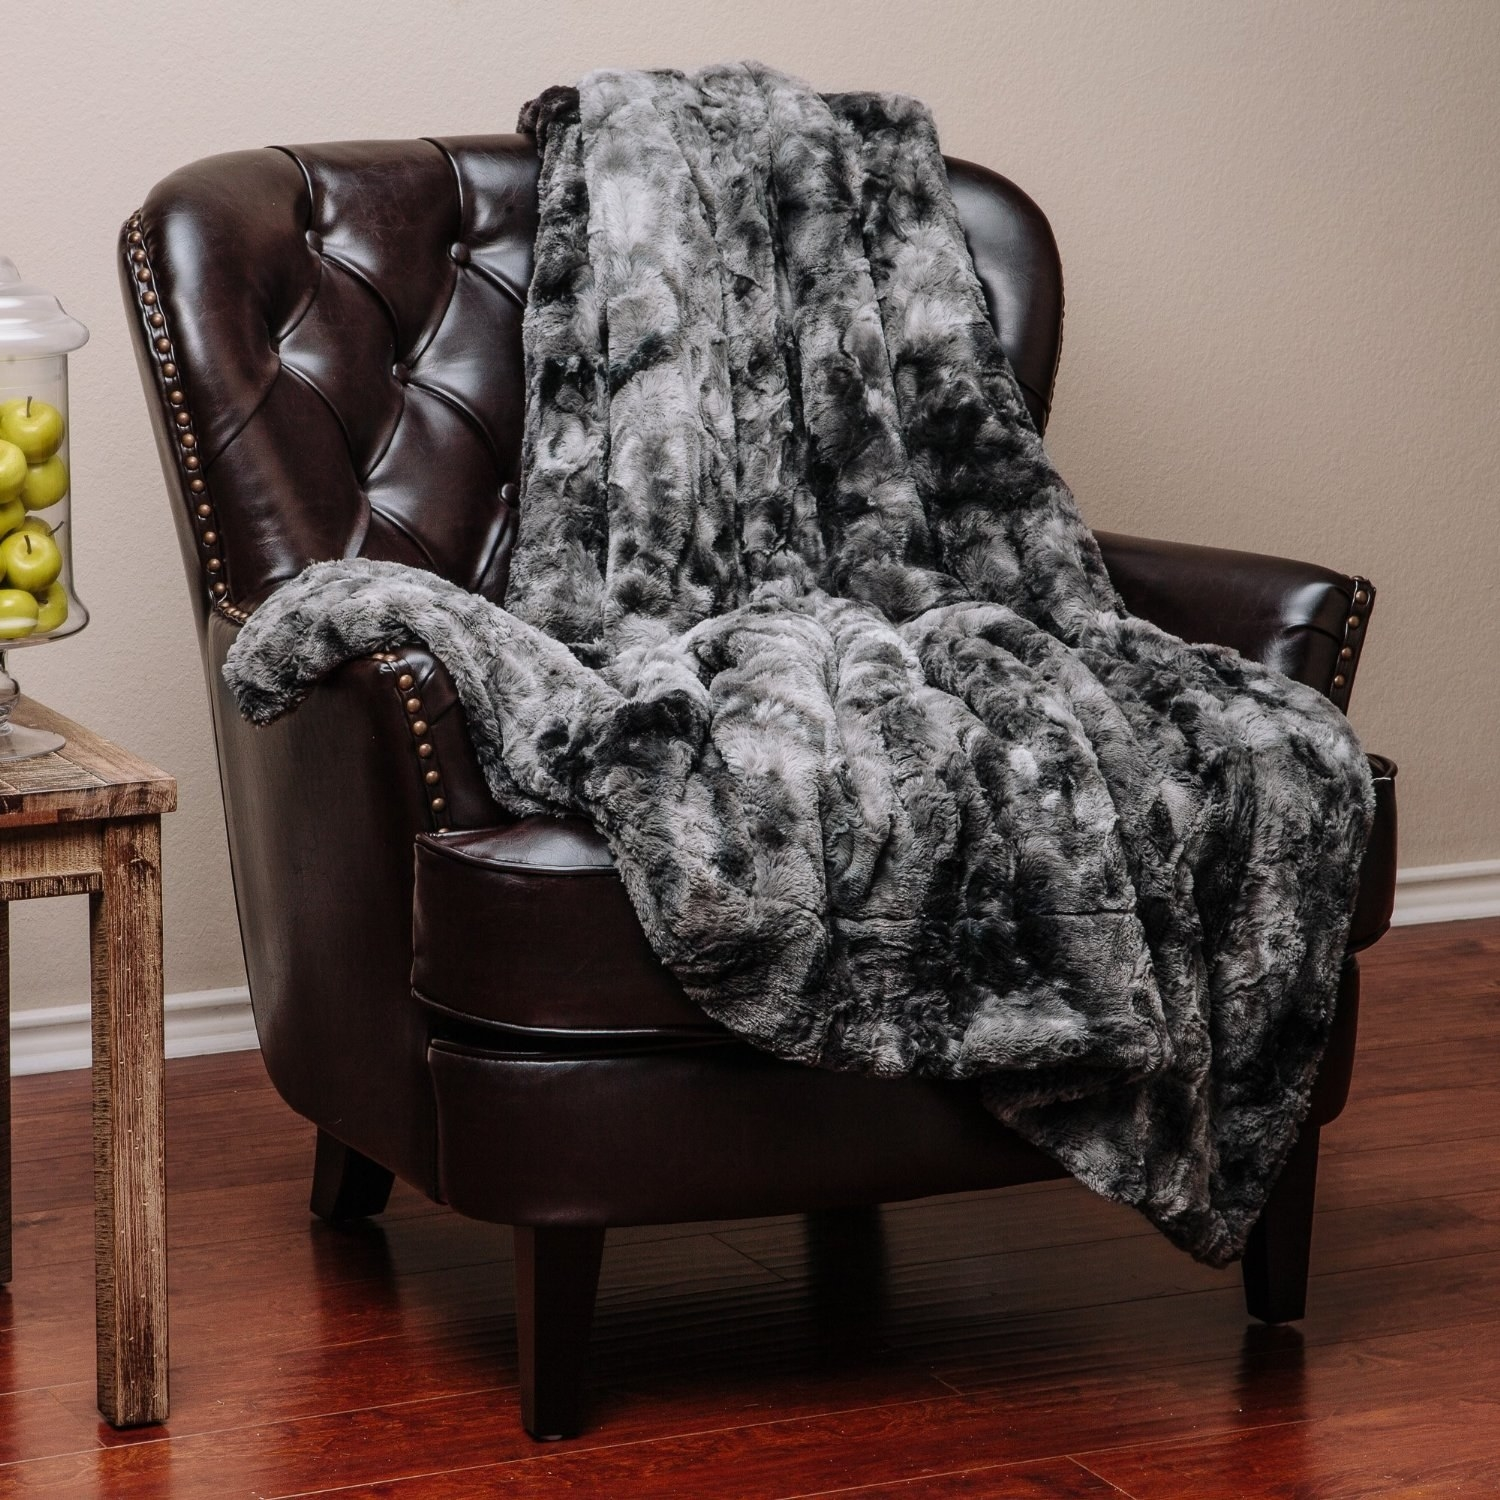 14. Add Some Cozy Interest To An Armchair With This Fuzzy, Luxurious Throw  That Has Pretty Color Variation.